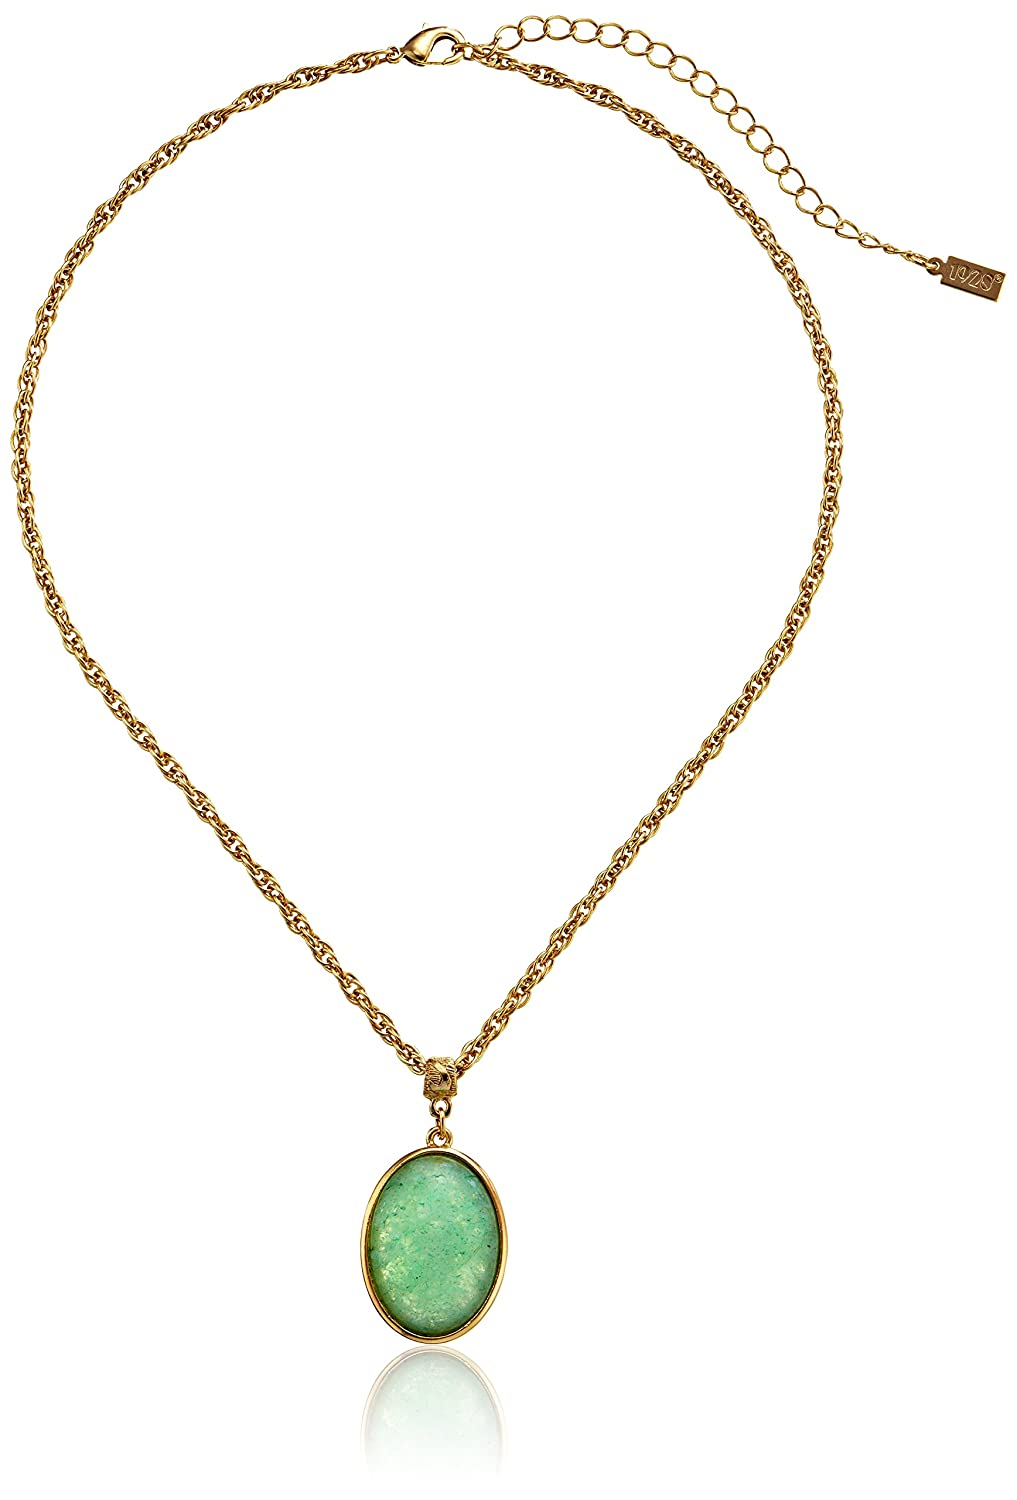 "1928 Jewelry ""Semi Precious Collection"" 14k Gold Dipped Oval Pendant Necklace, 16"" by 1928 Jewelry"